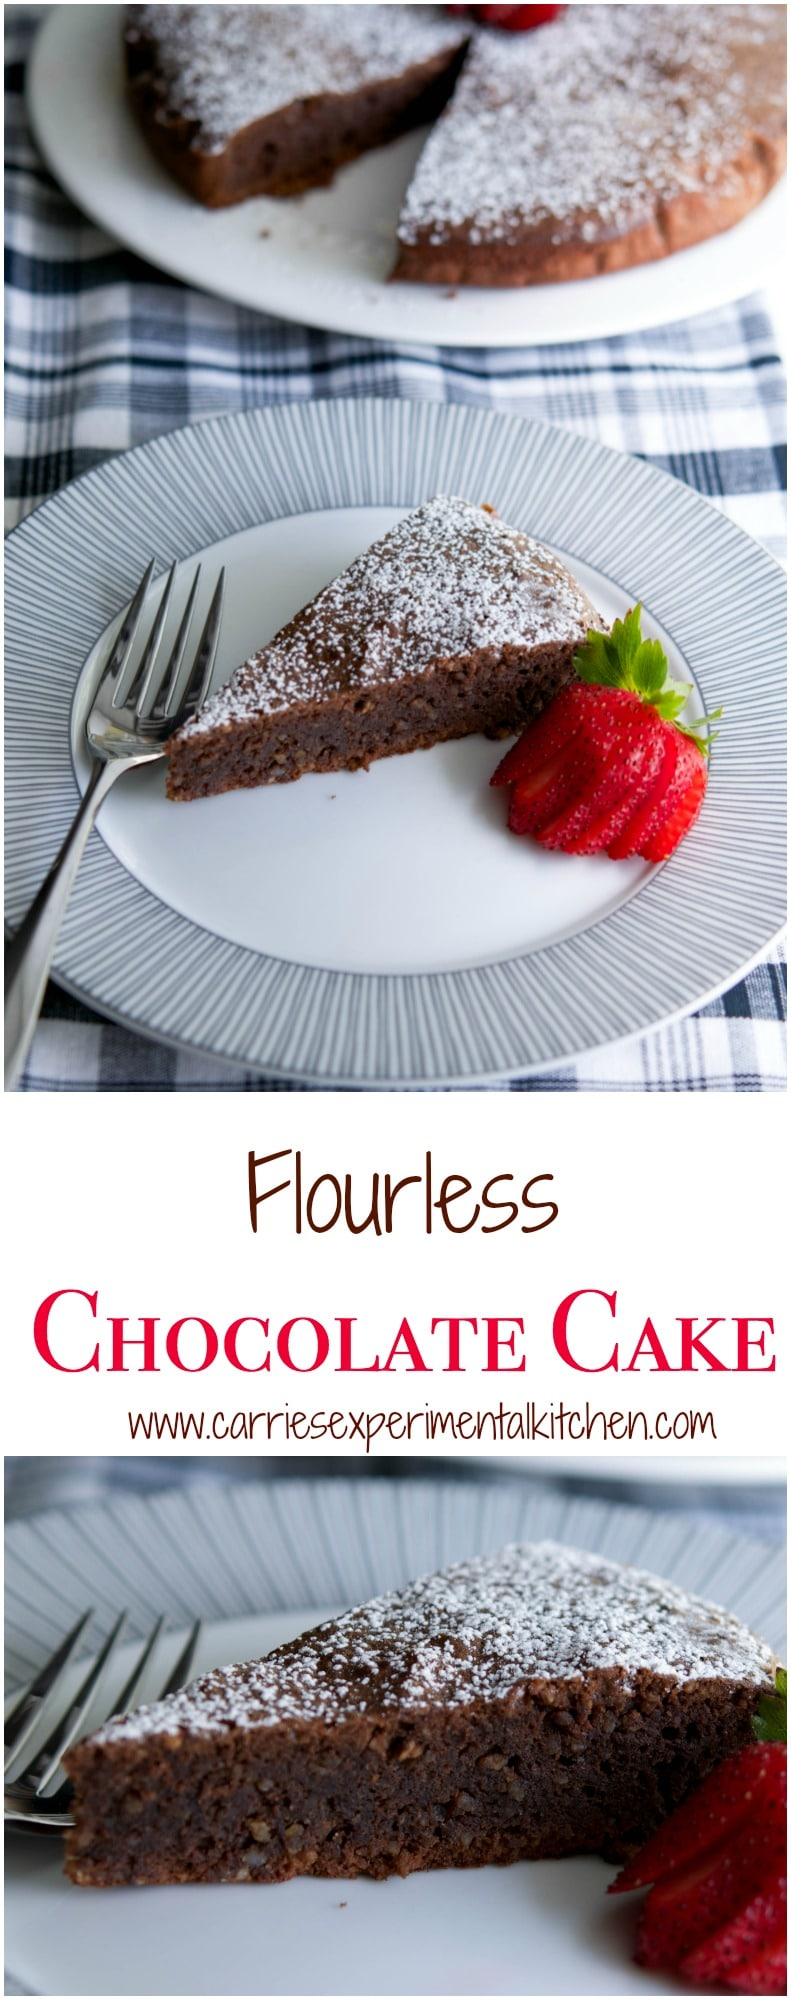 This Flourless Chocolate Cake is decadent and rich, just like a brownie and perfect for those following a gluten free lifestyle. #chocolate #cake #glutenfree #dessert